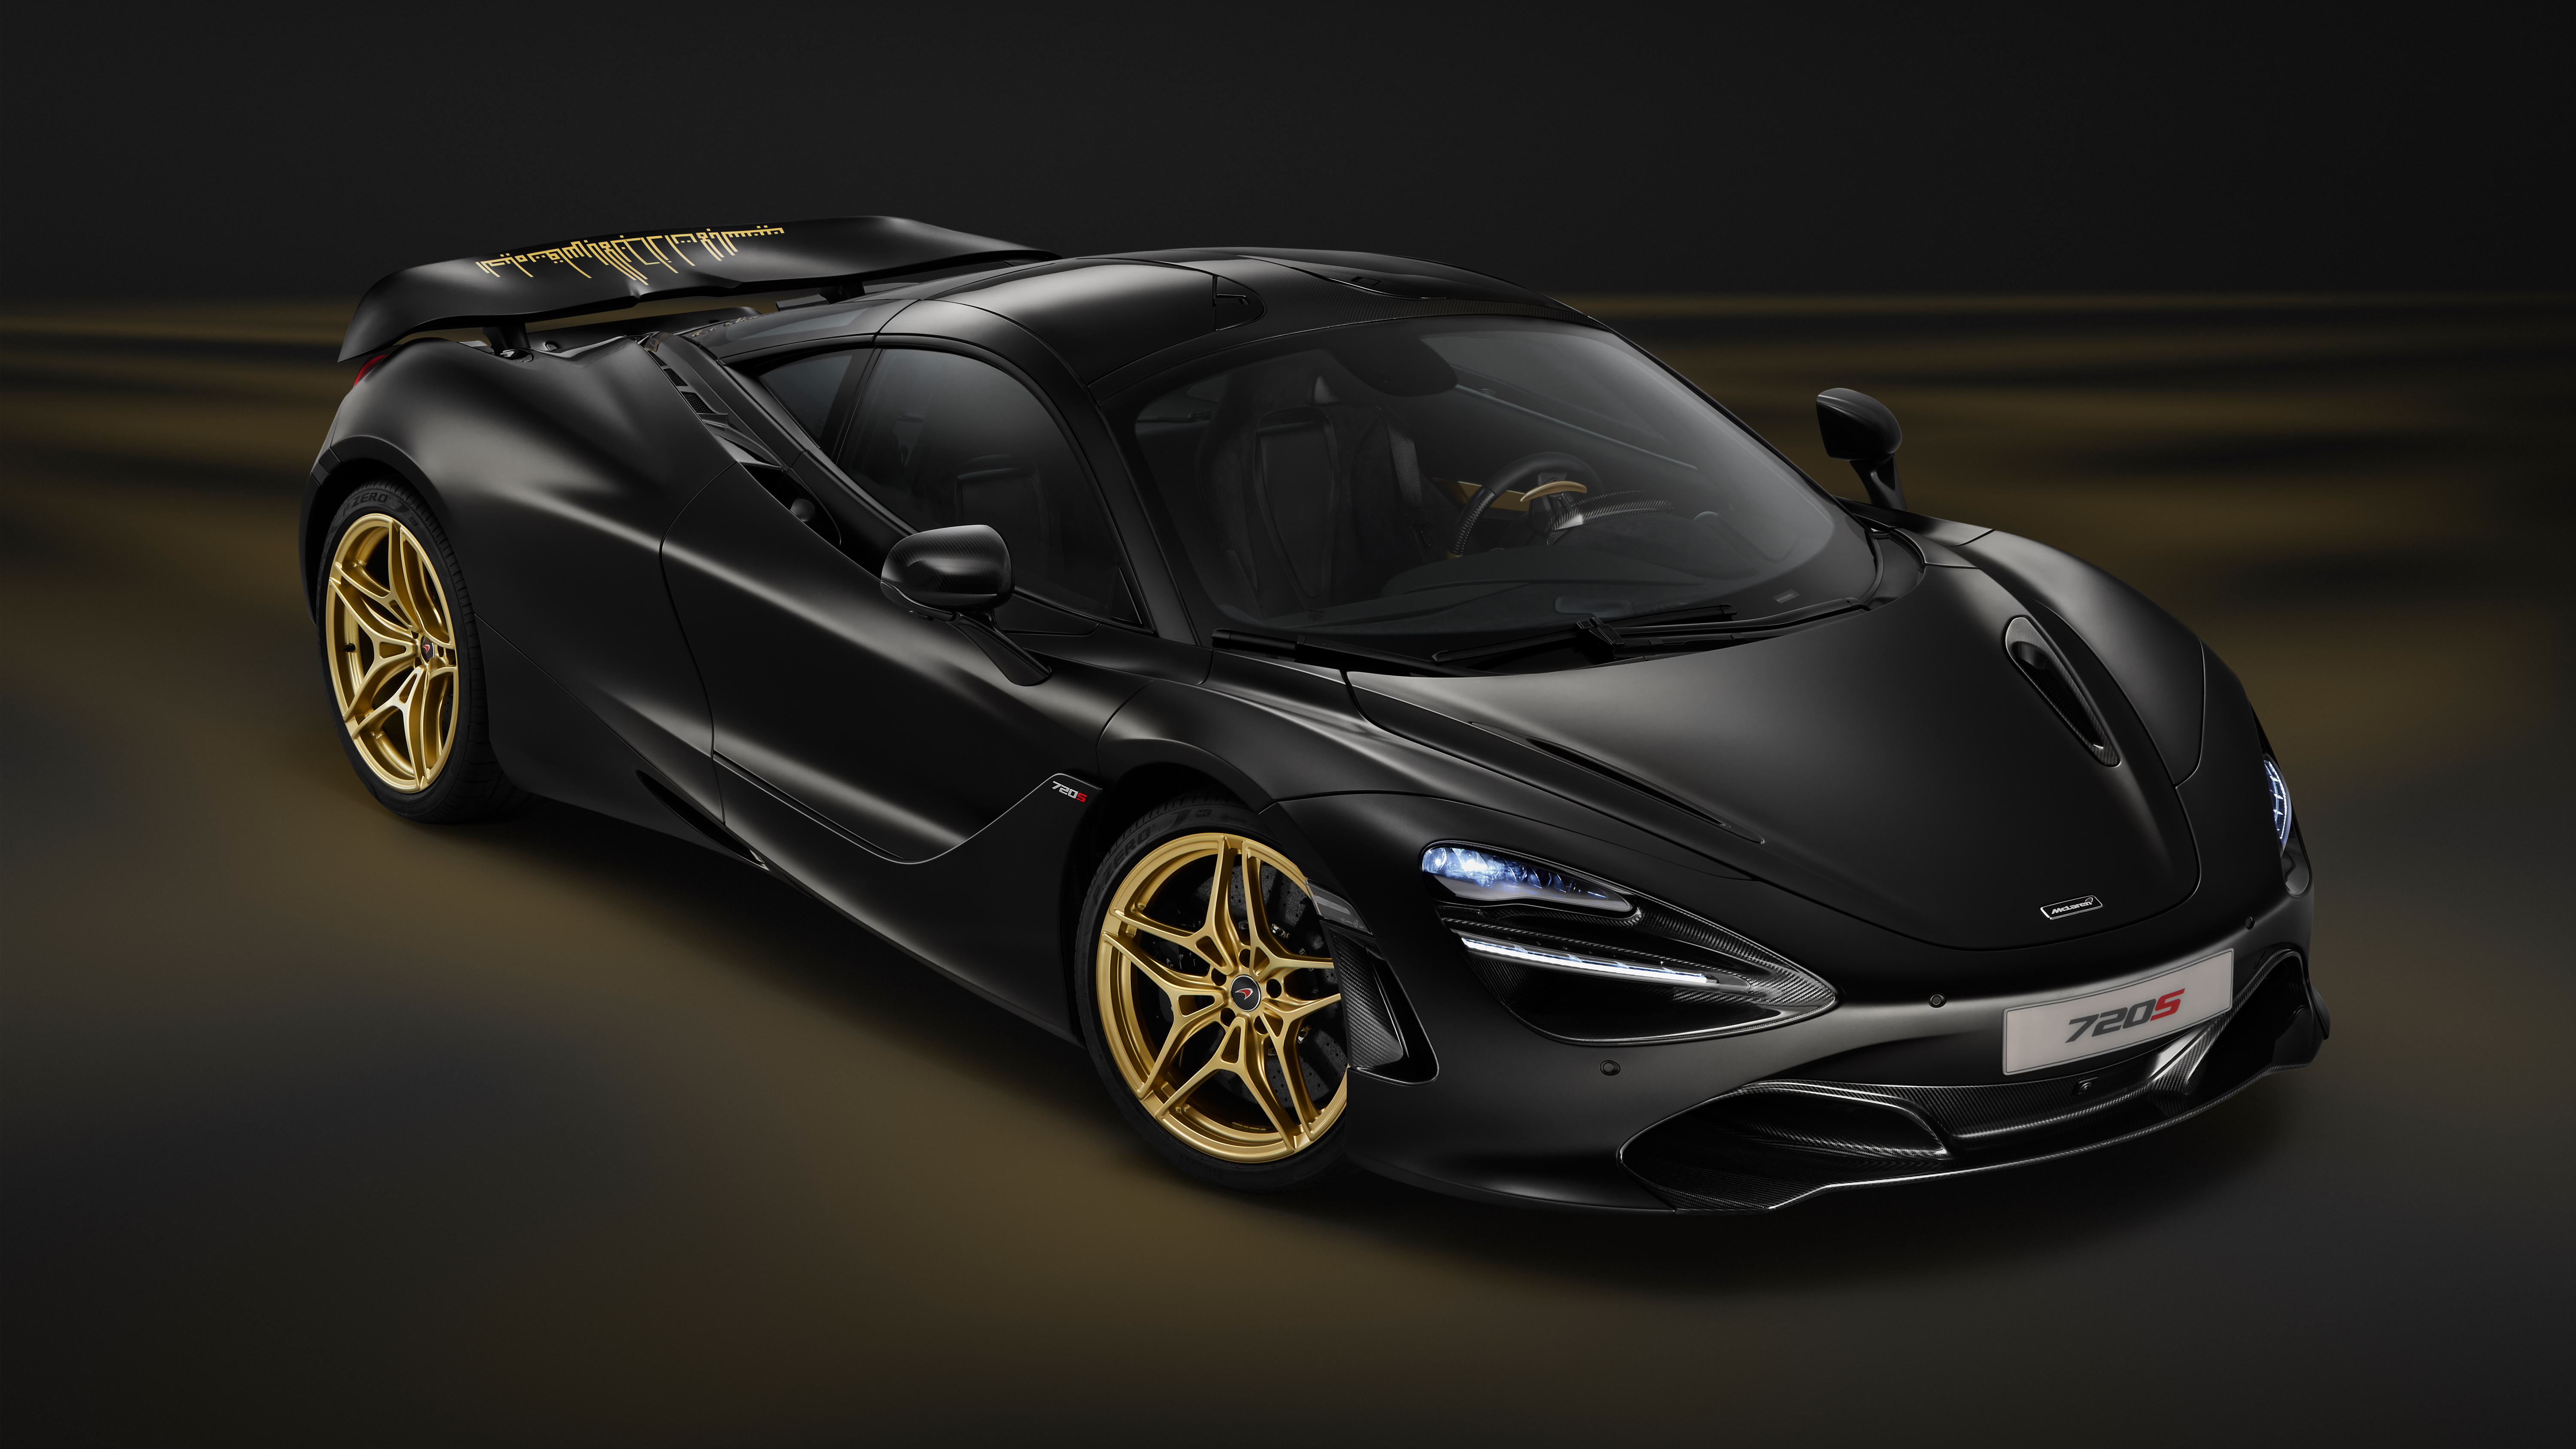 844 Mclaren Hd Wallpapers Background Images Wallpaper Abyss